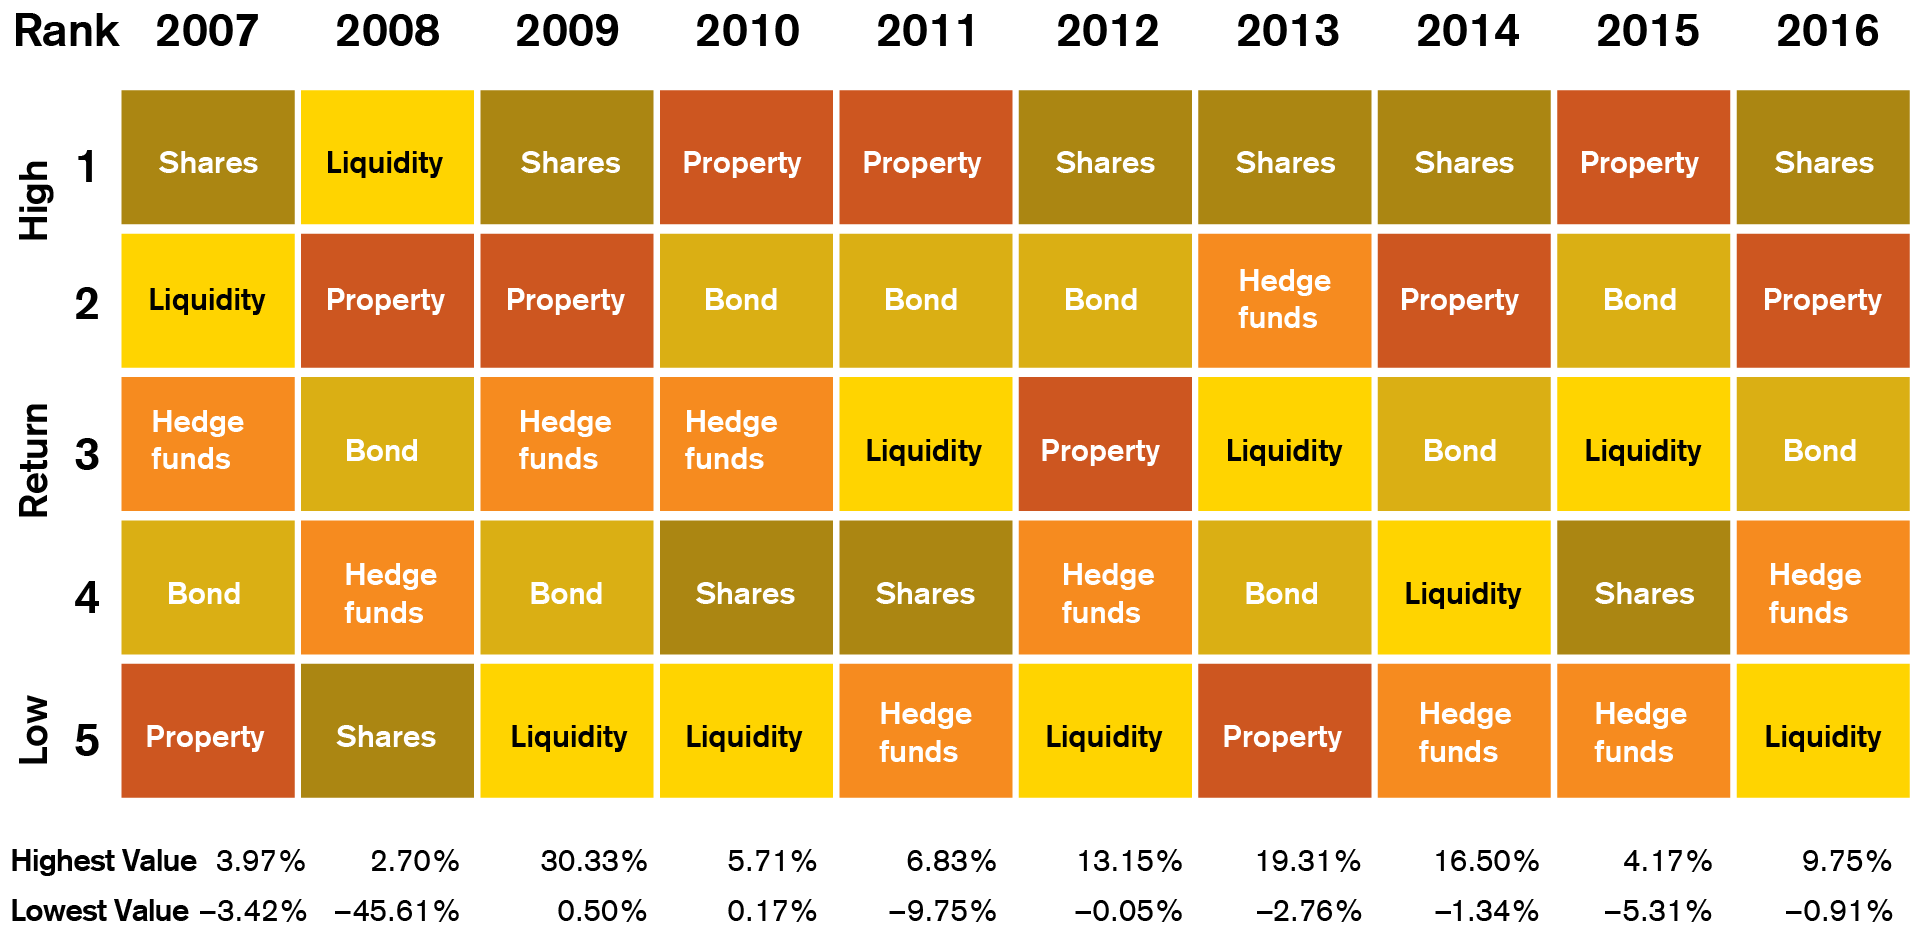 return rankings of different asset classes over time